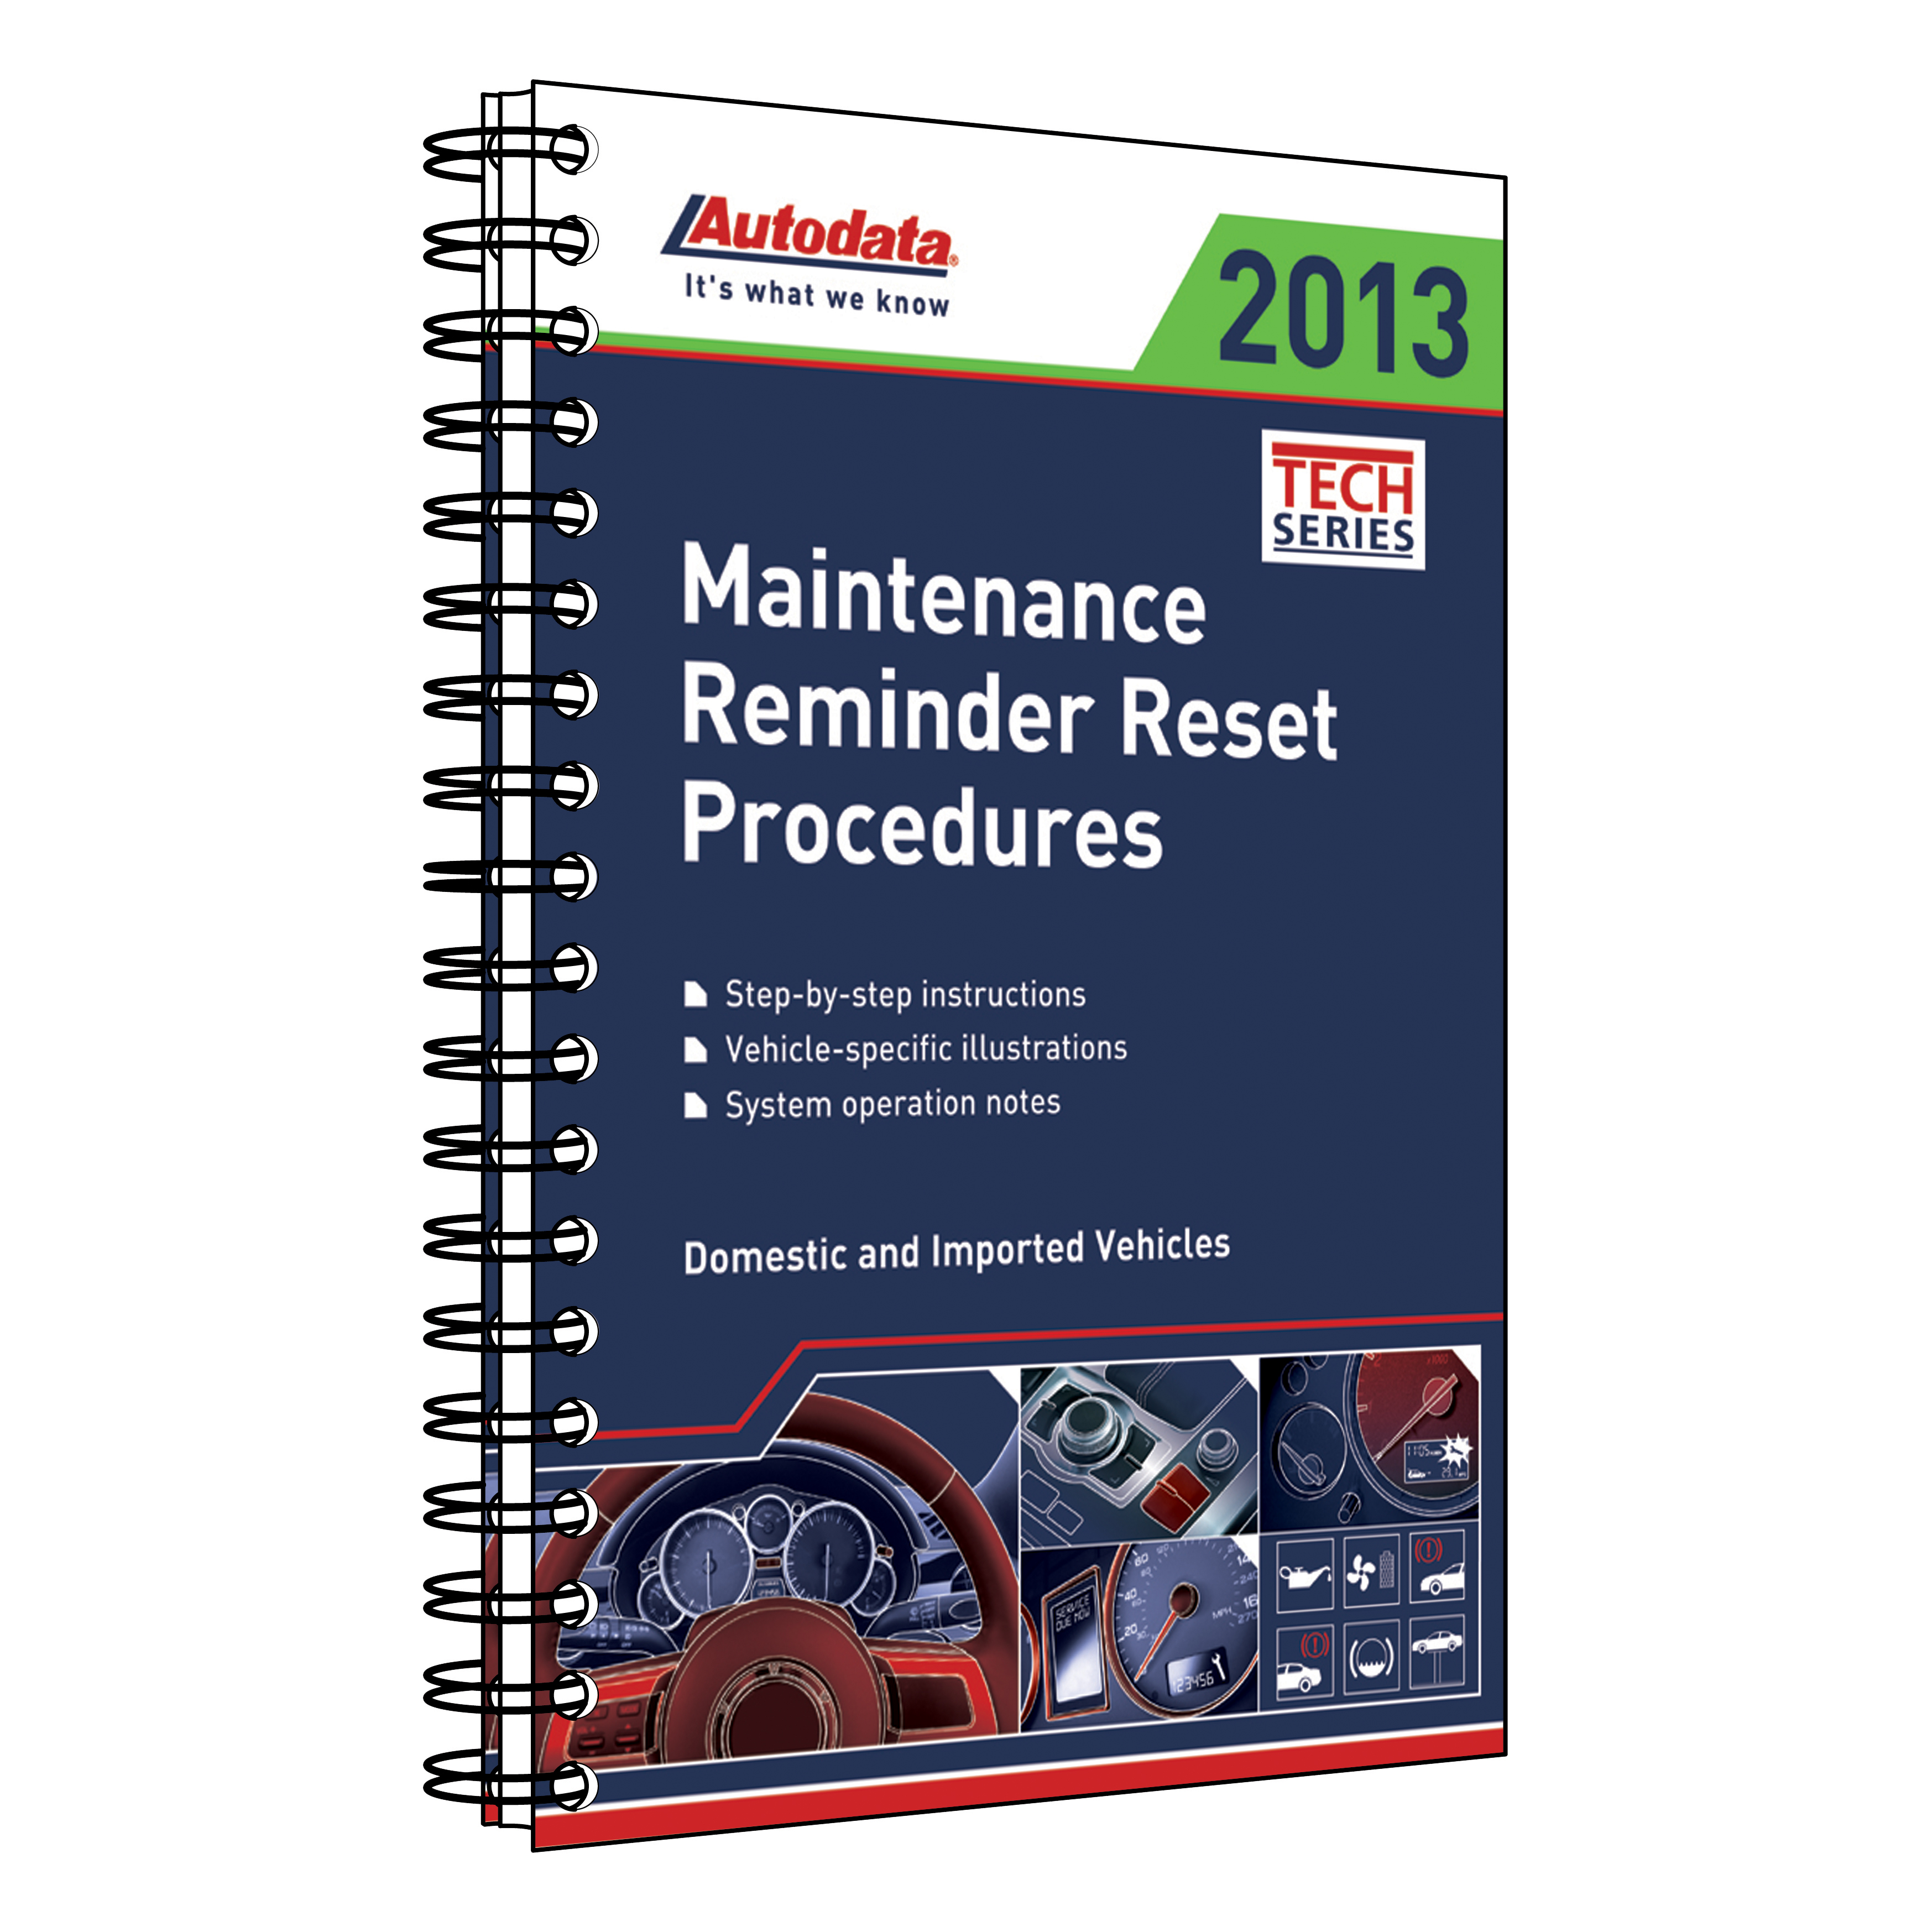 Autodata releases new maintenance reminder reset manual for 2013